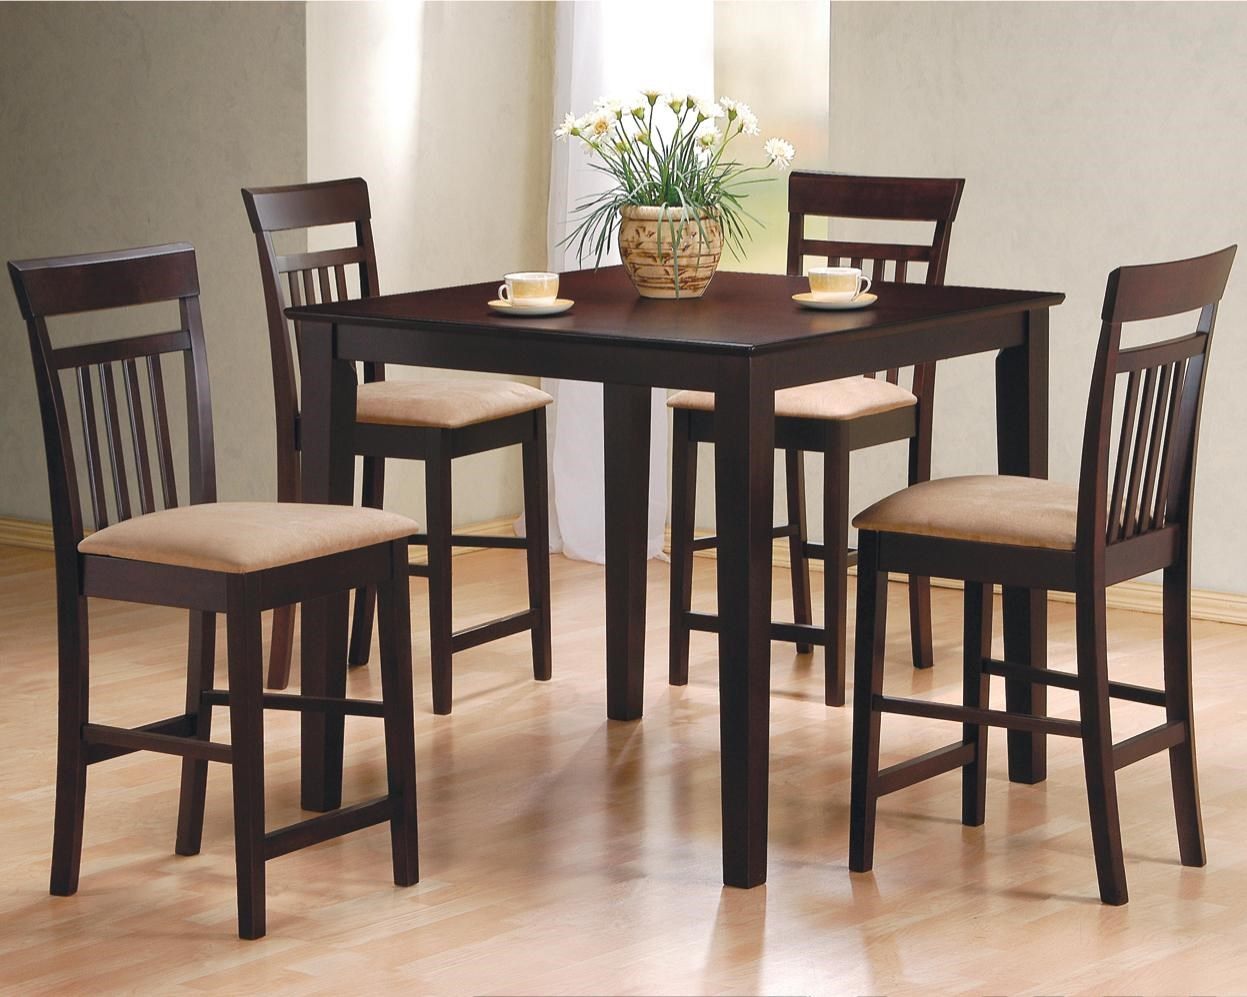 Delicieux Mix U0026 Match 5 Piece Counter Height Dining Set By Coaster